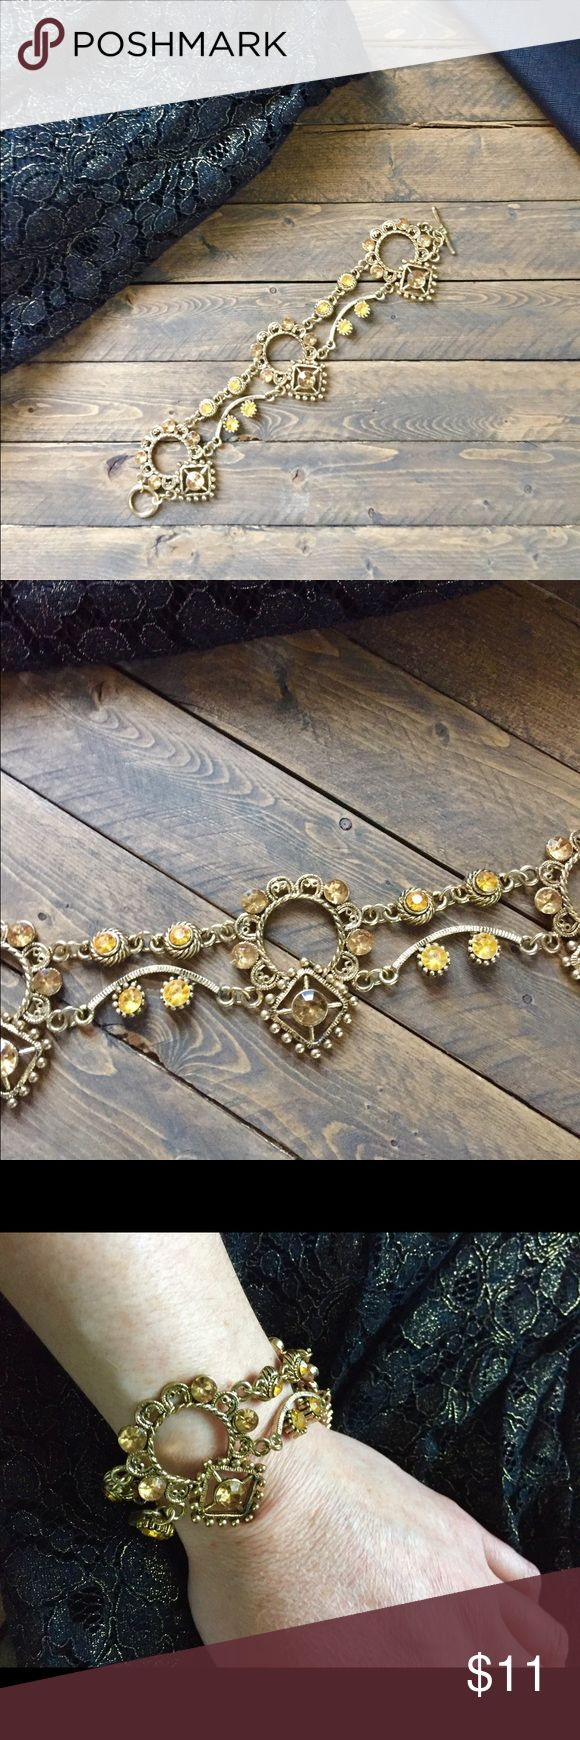 "💕 Gorgeous antiqued bracelet Very unique antique gold colored chunky bracelet with jewels of marigold. Perfect to wear for that special occasion out. Hook and clasp closure and measures about 8"" in length. Excellent condition and no missing stones. Home is smoke and pet free ✌️️🌺 Jewelry Bracelets"